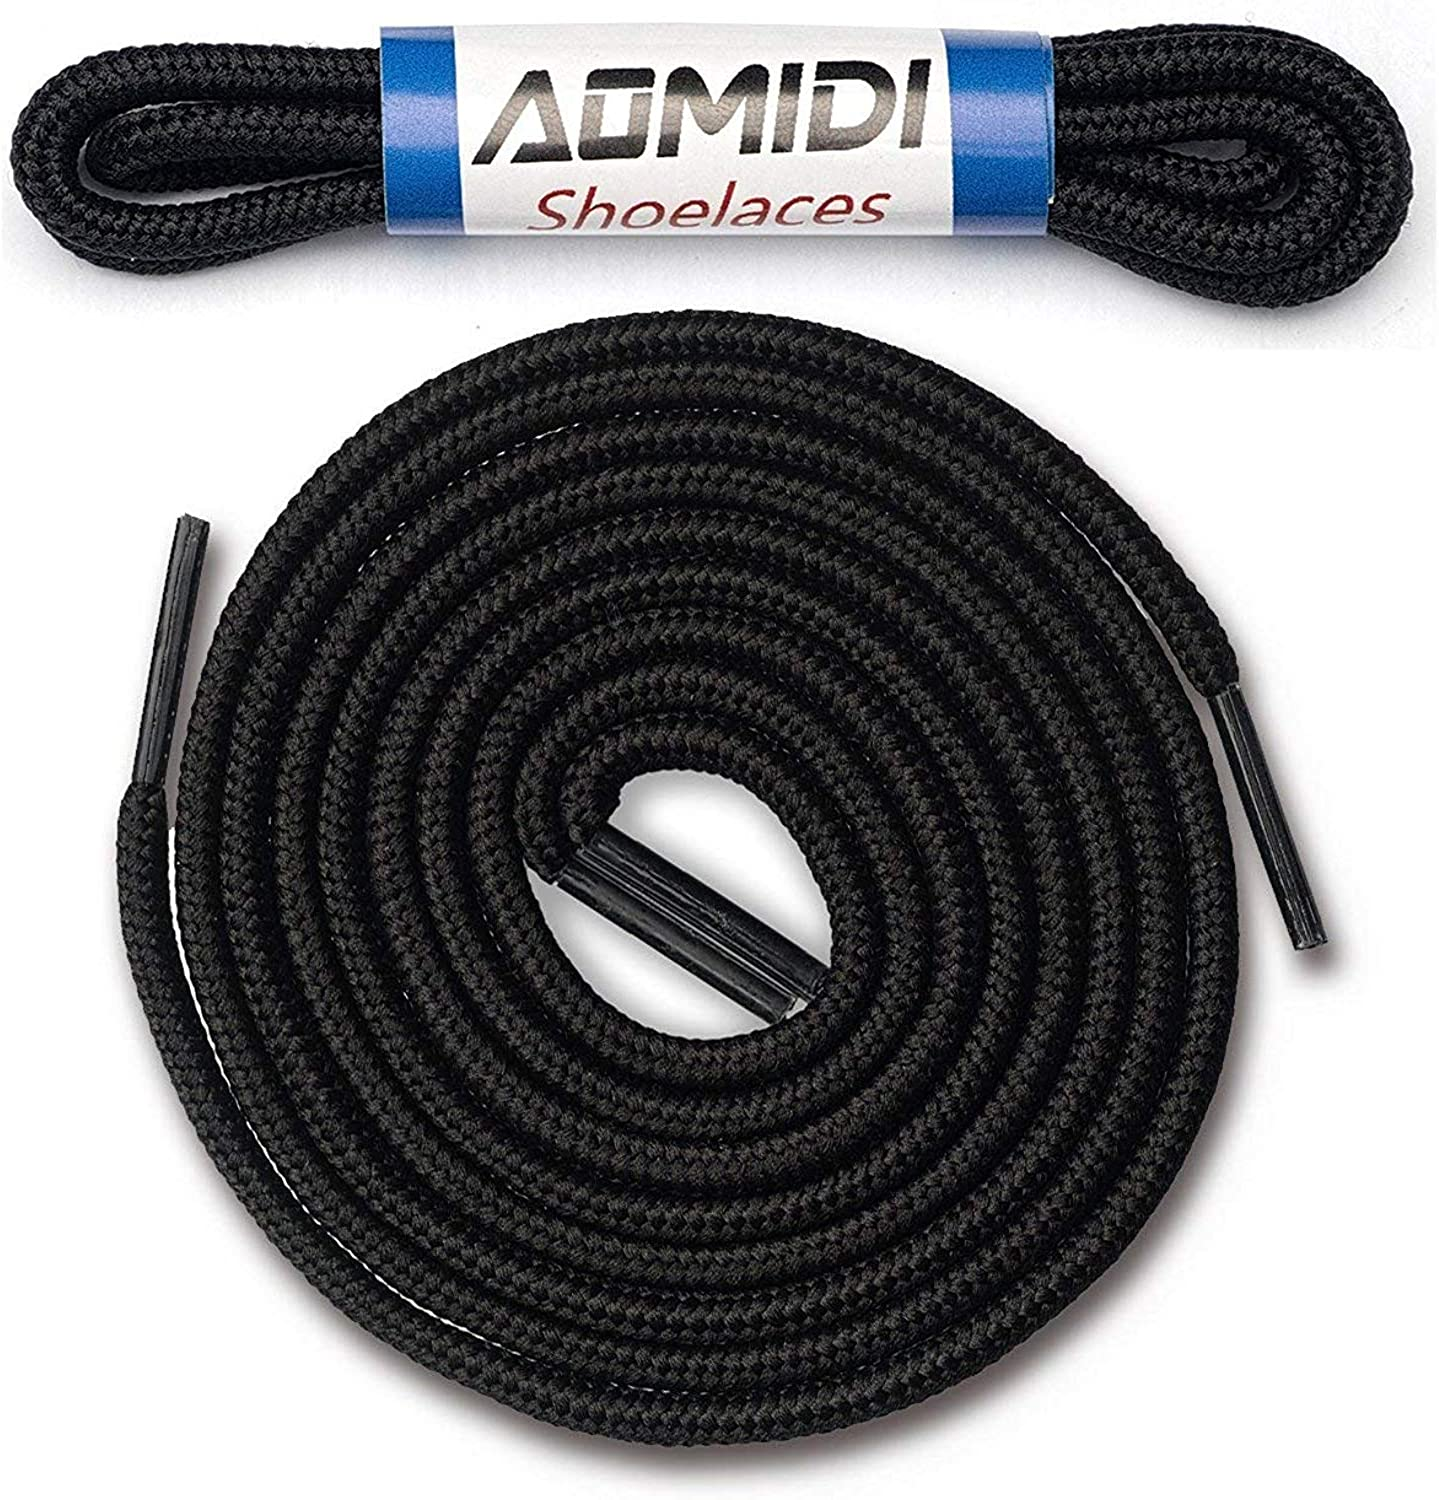 Shoelaces Round Athletic Shoes Lace Shoe and Boot Laces Shoelaces Replacements